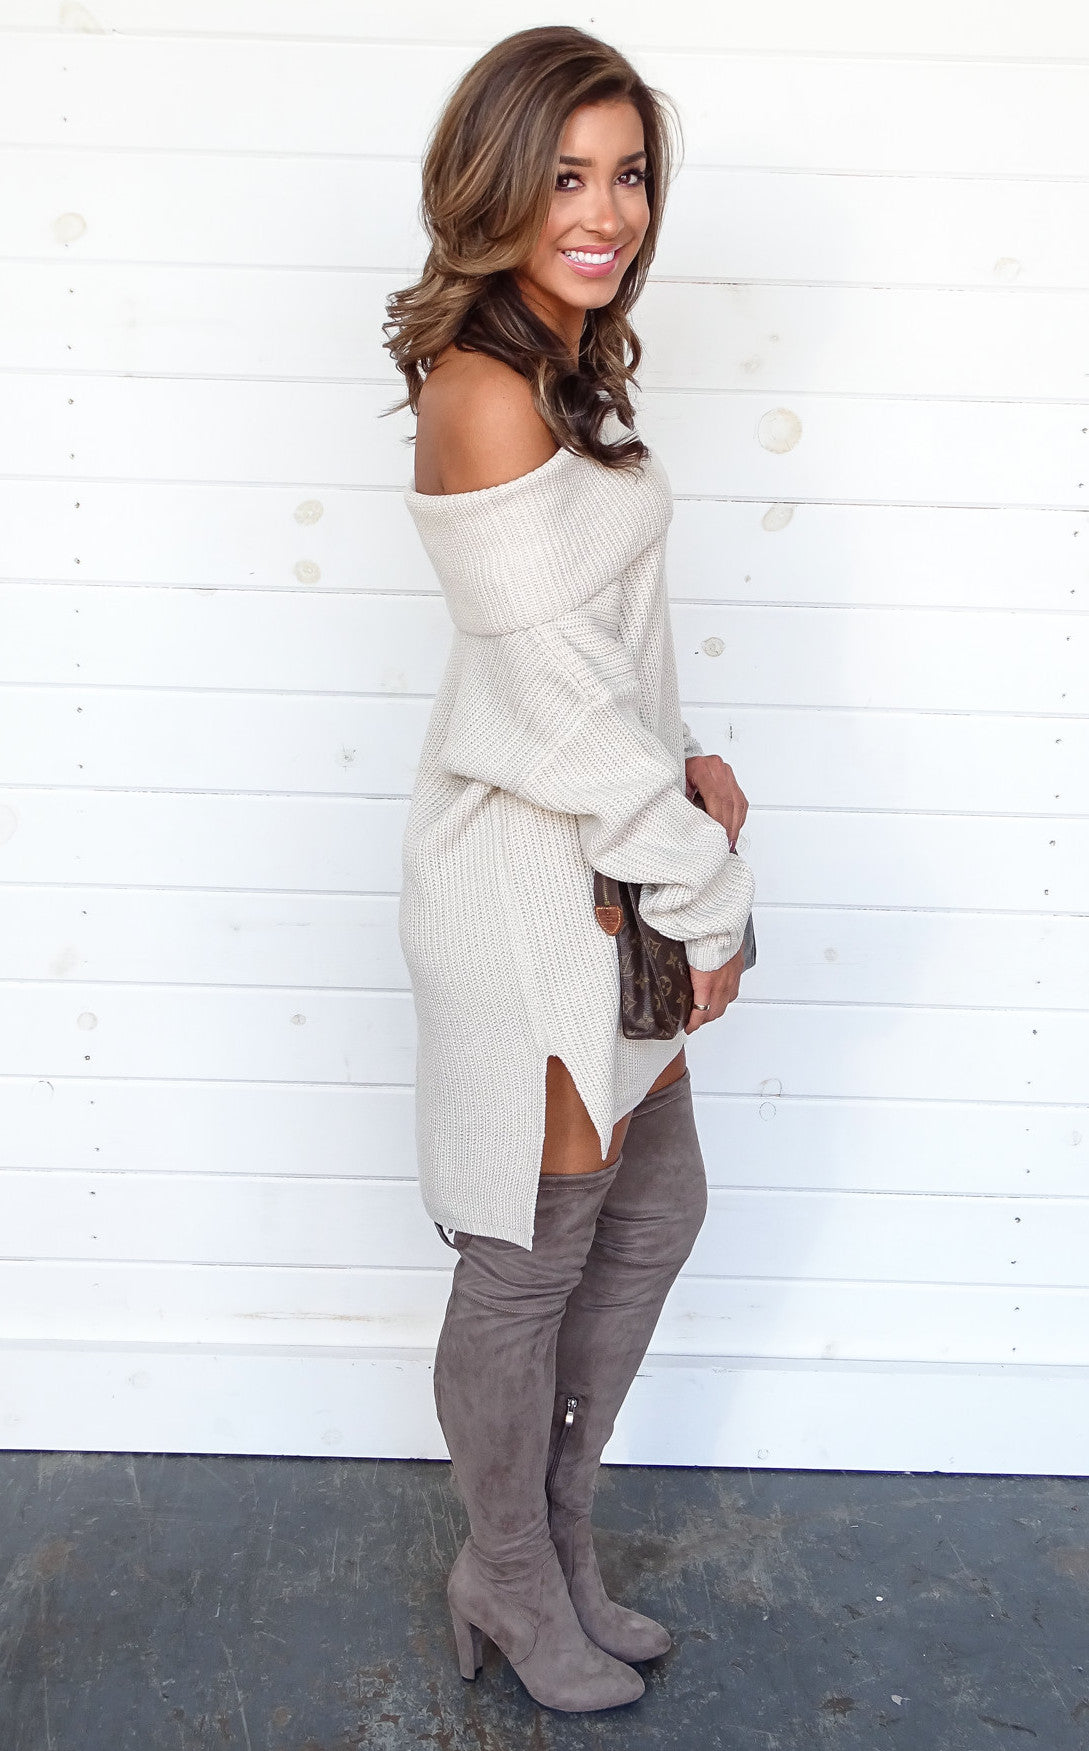 PORTS TUNIC SWEATER - NATURAL